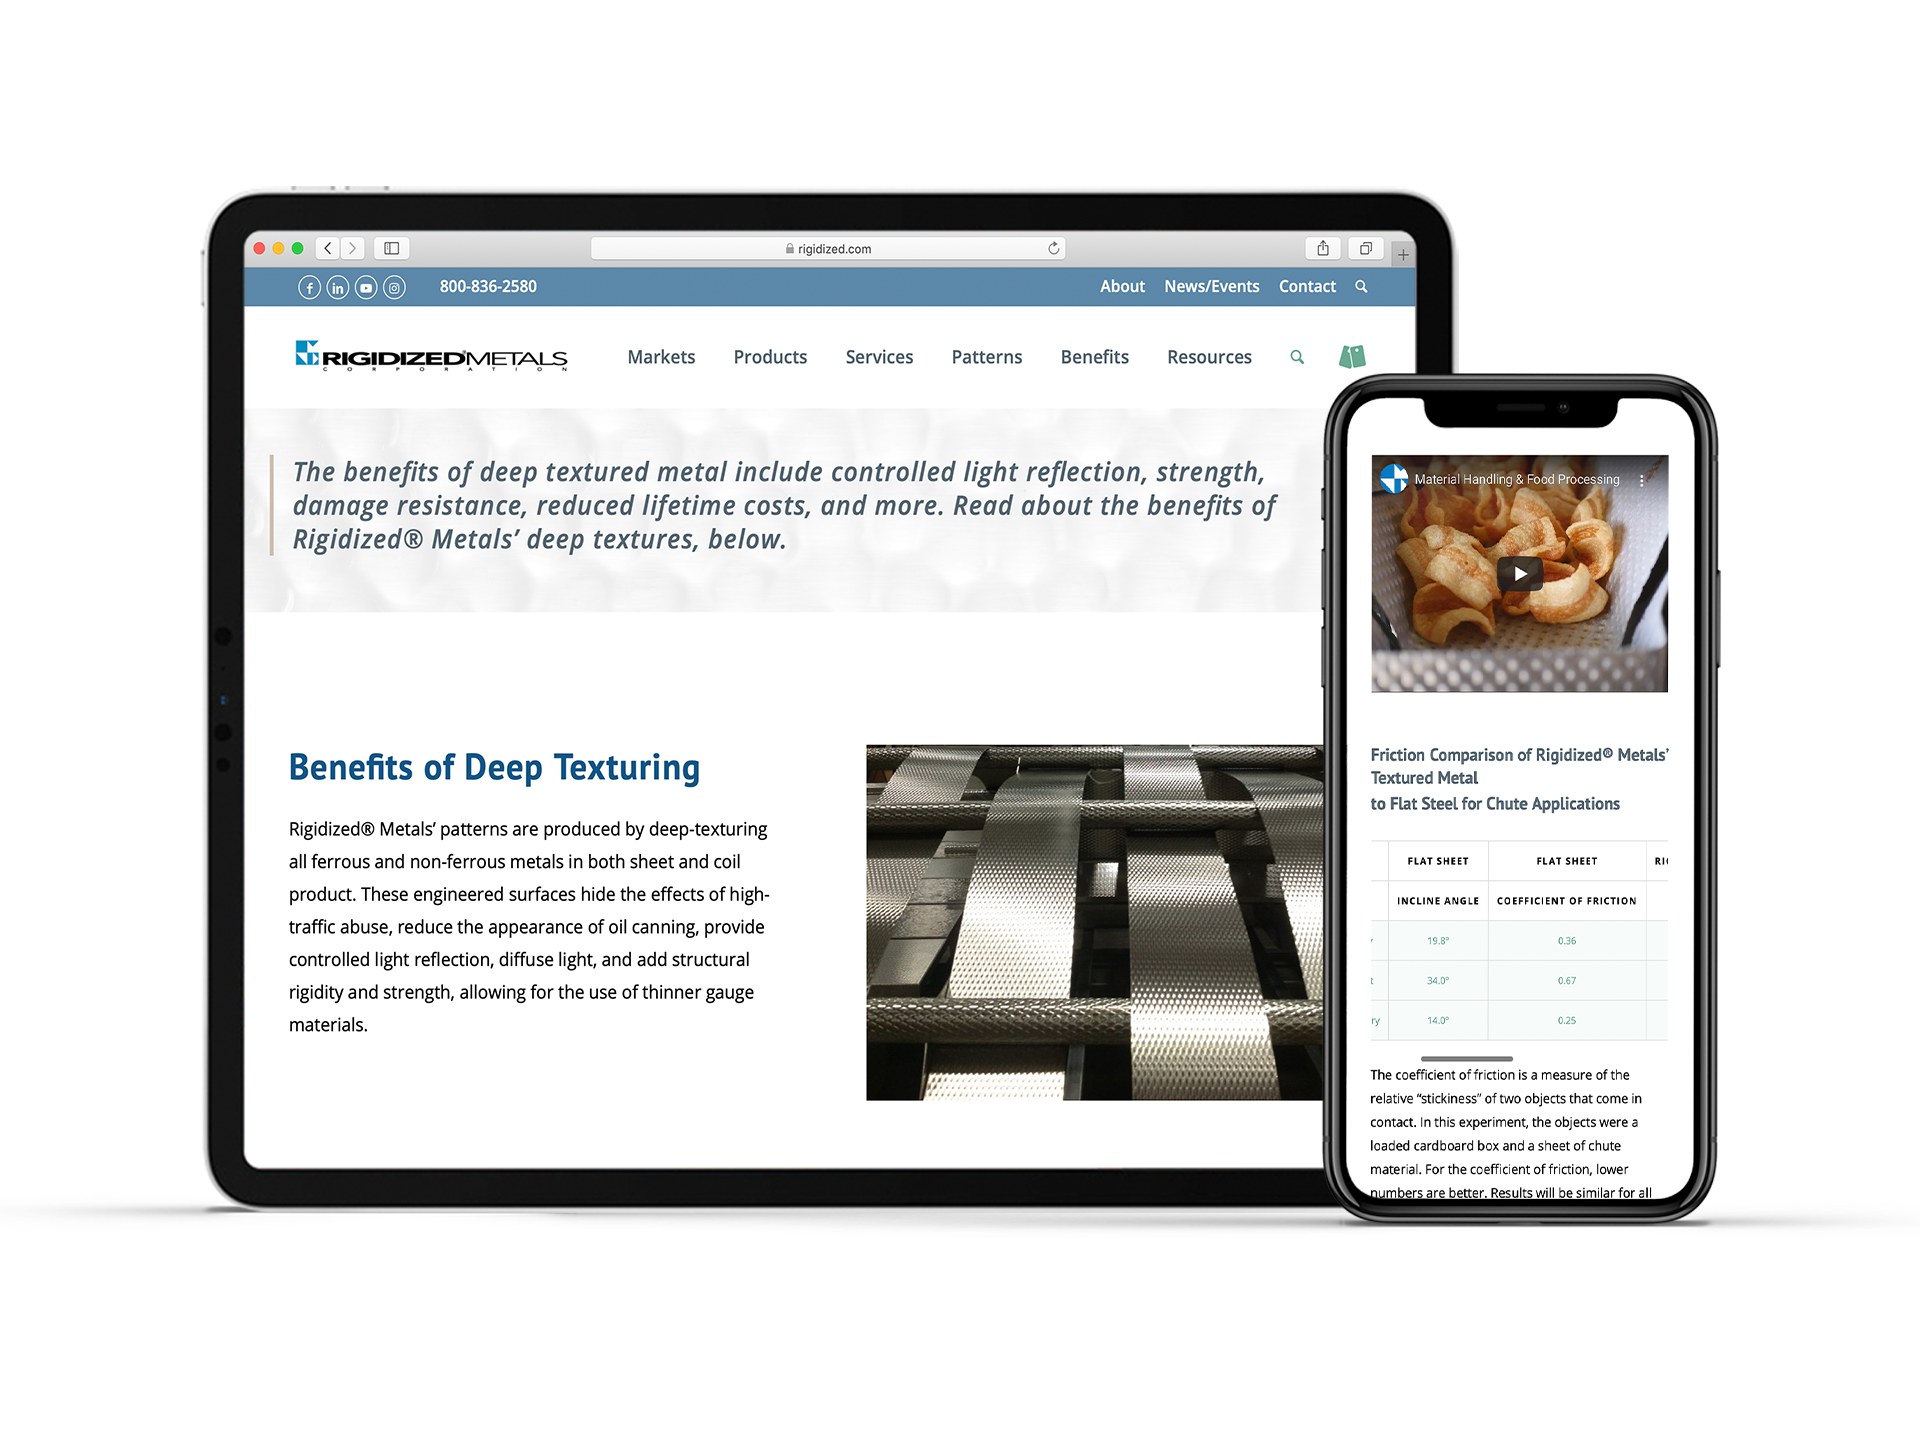 OtherWisz Creative offers responsive website design services, creating mobile-friendly sites for your business